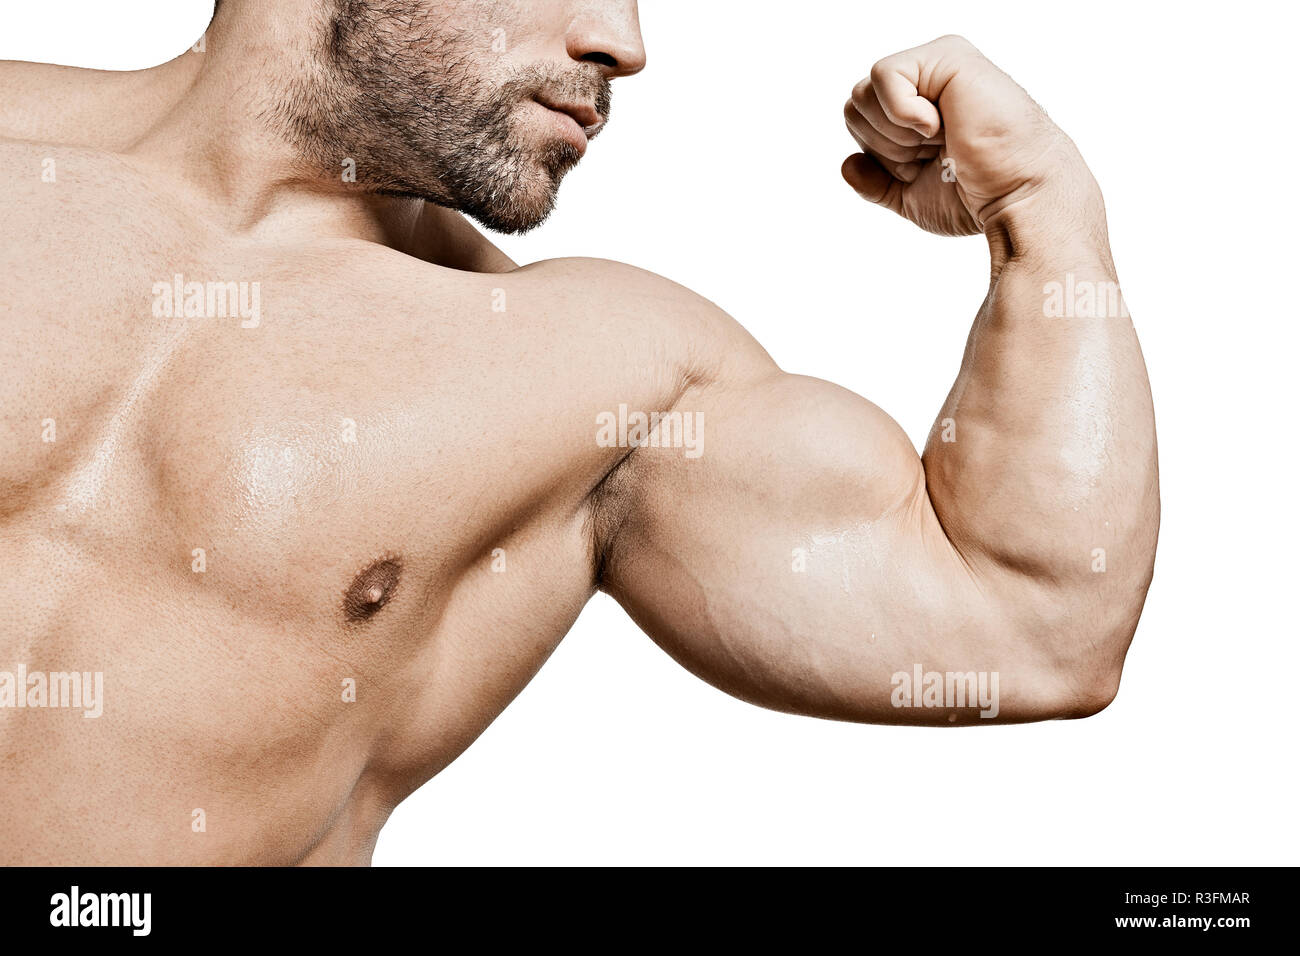 biceps of a bodybuilder - Stock Image